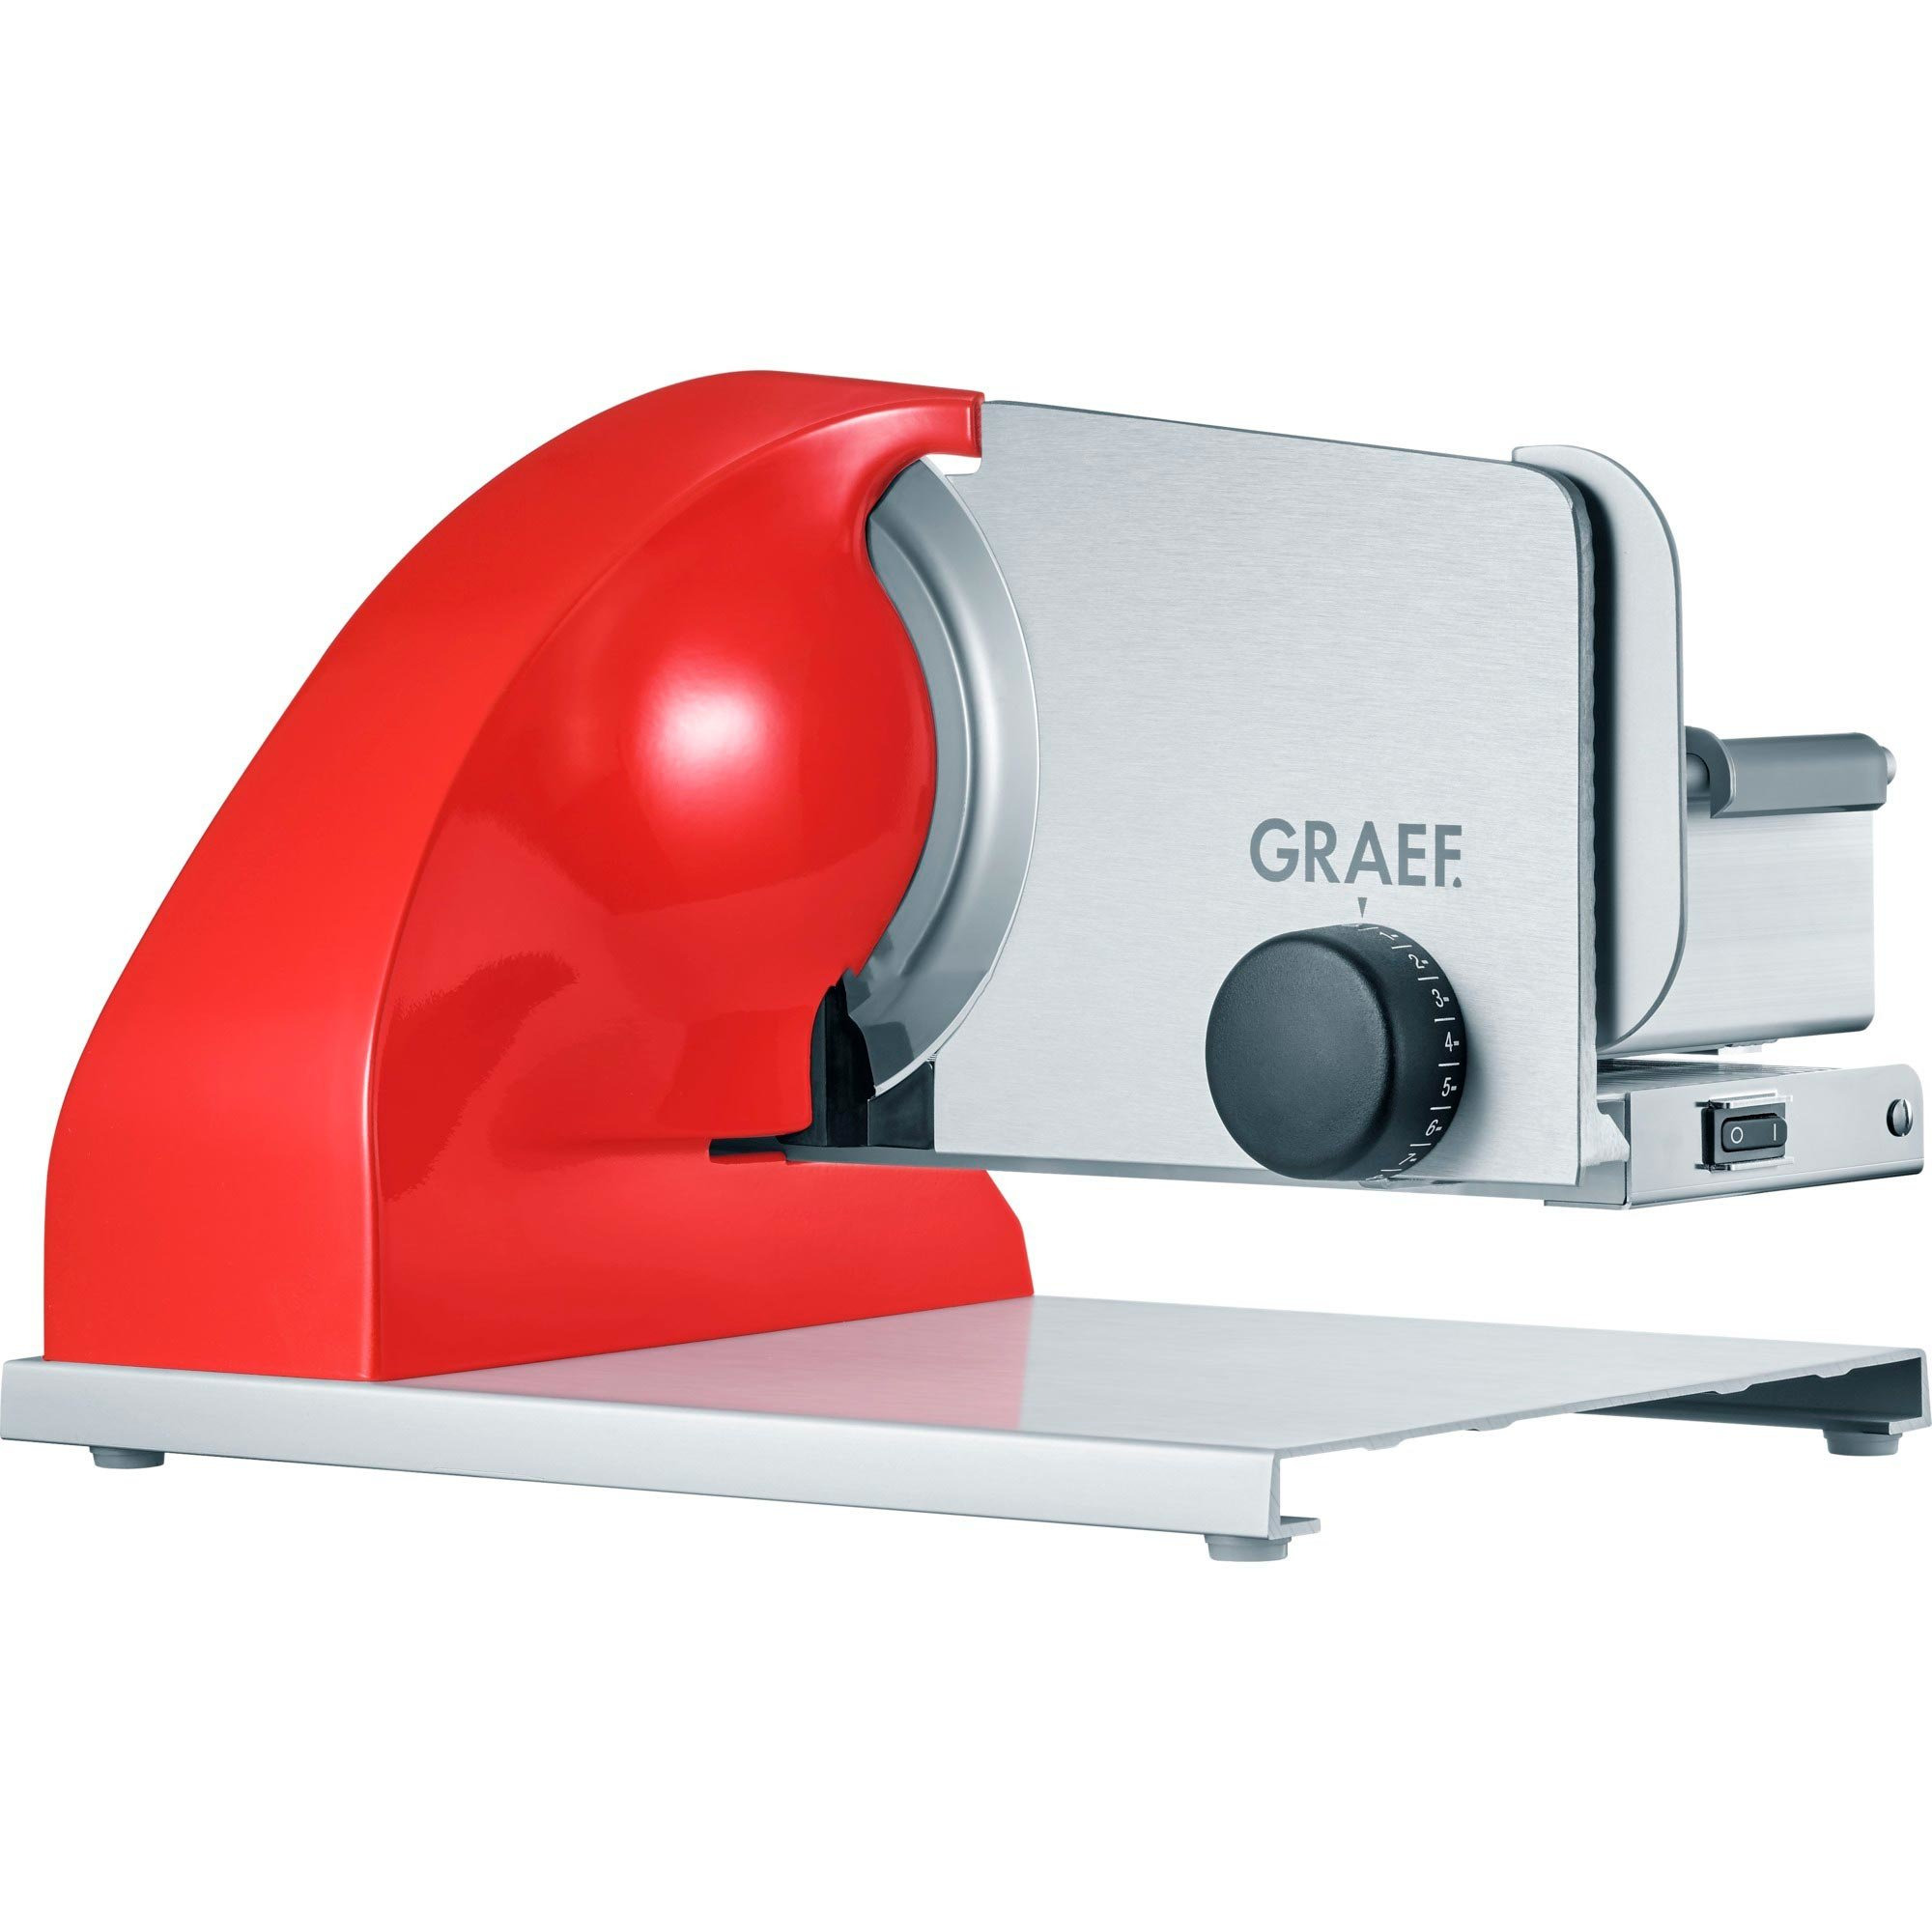 Graef Sliced Kitchen Slicer 903 röd